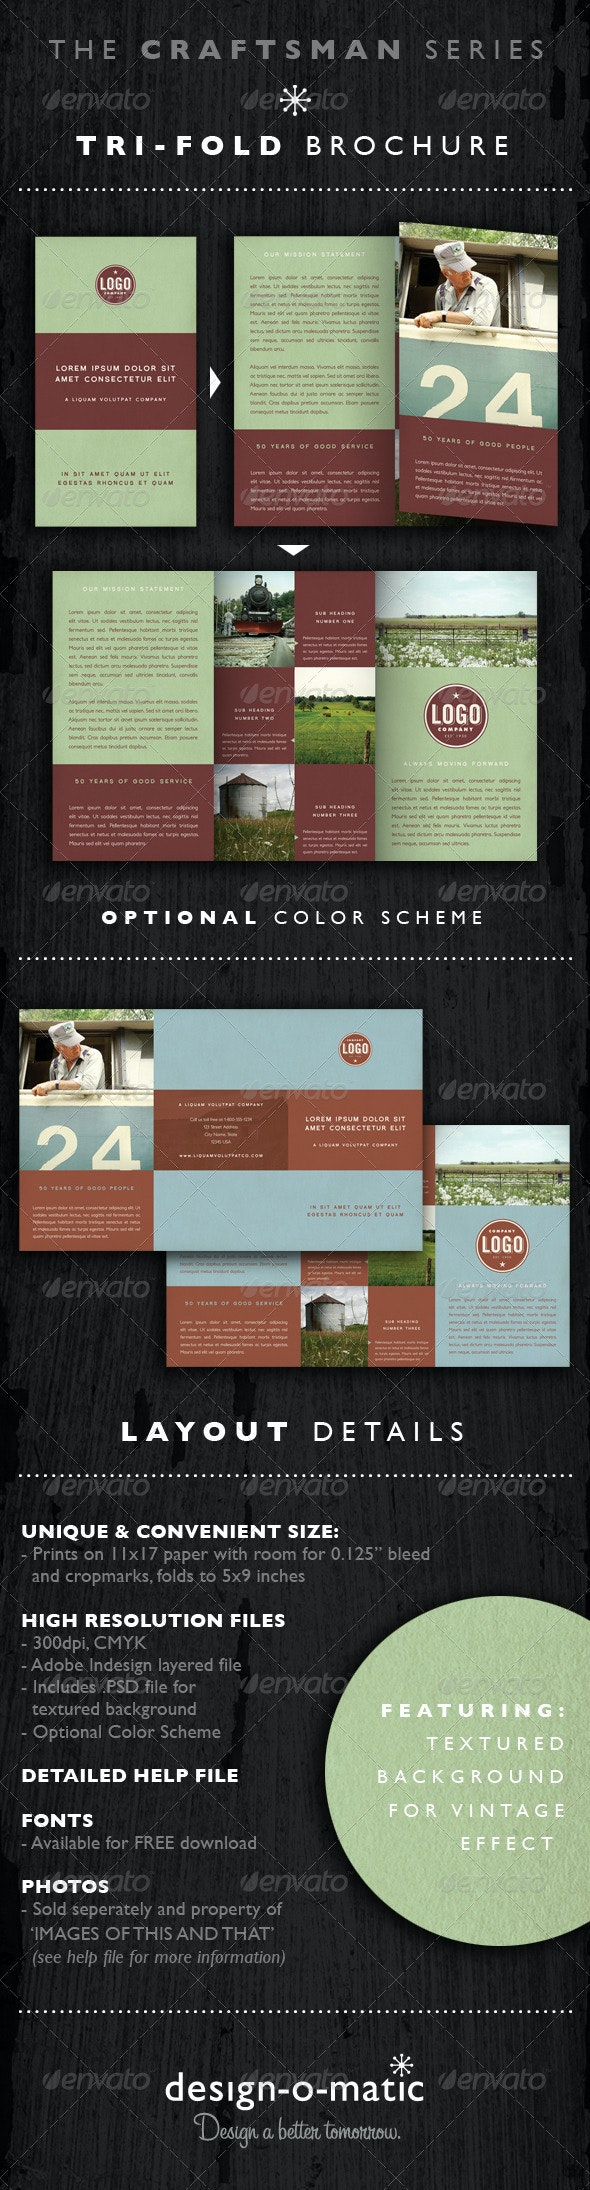 Tri-fold Brochure Template INDD - Corporate Brochures